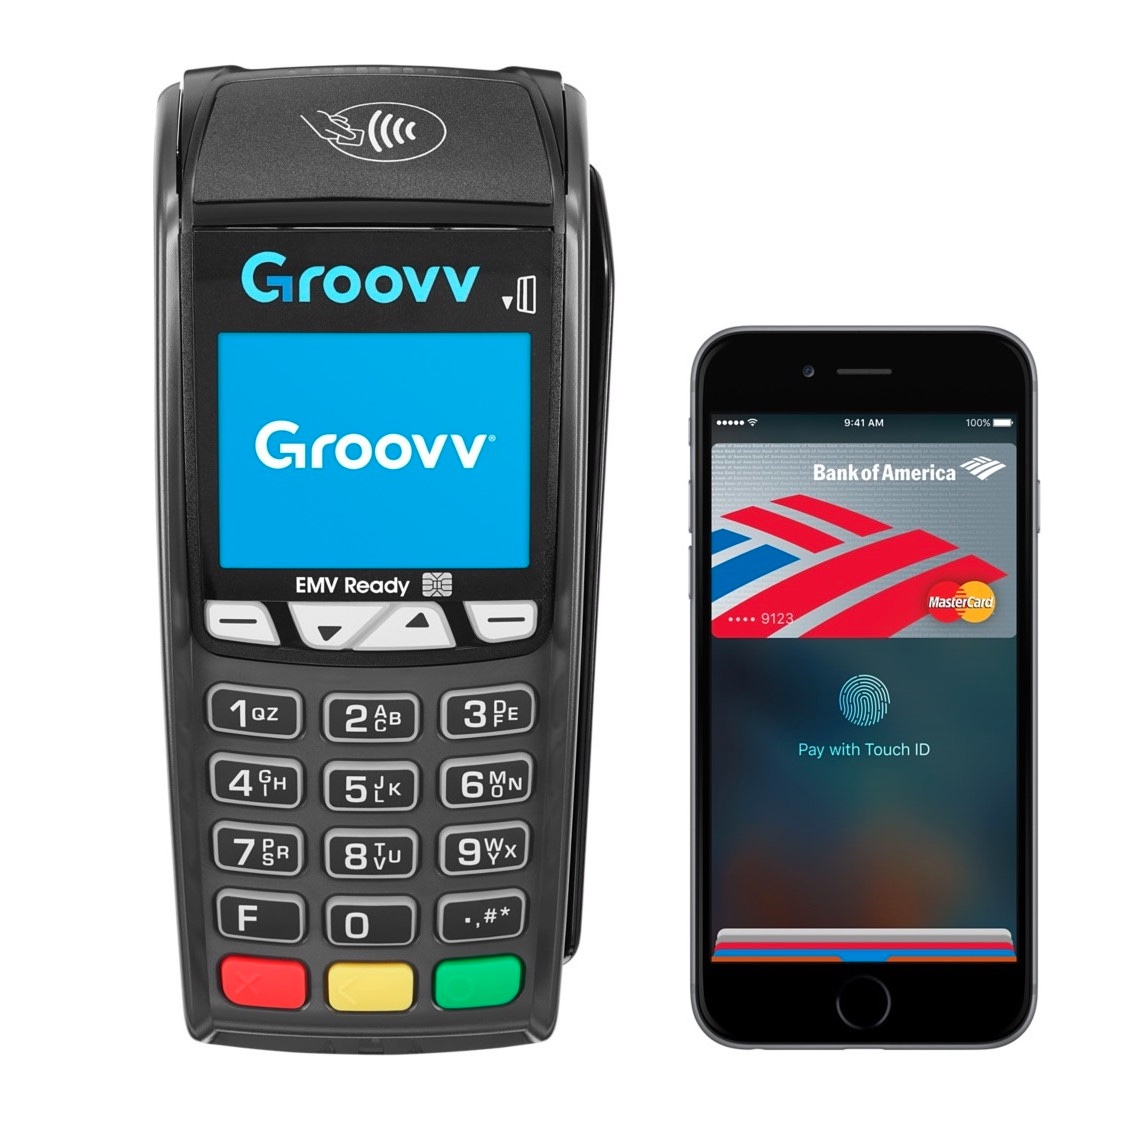 Groovv Makes Apple Pay For Small Business Easy And